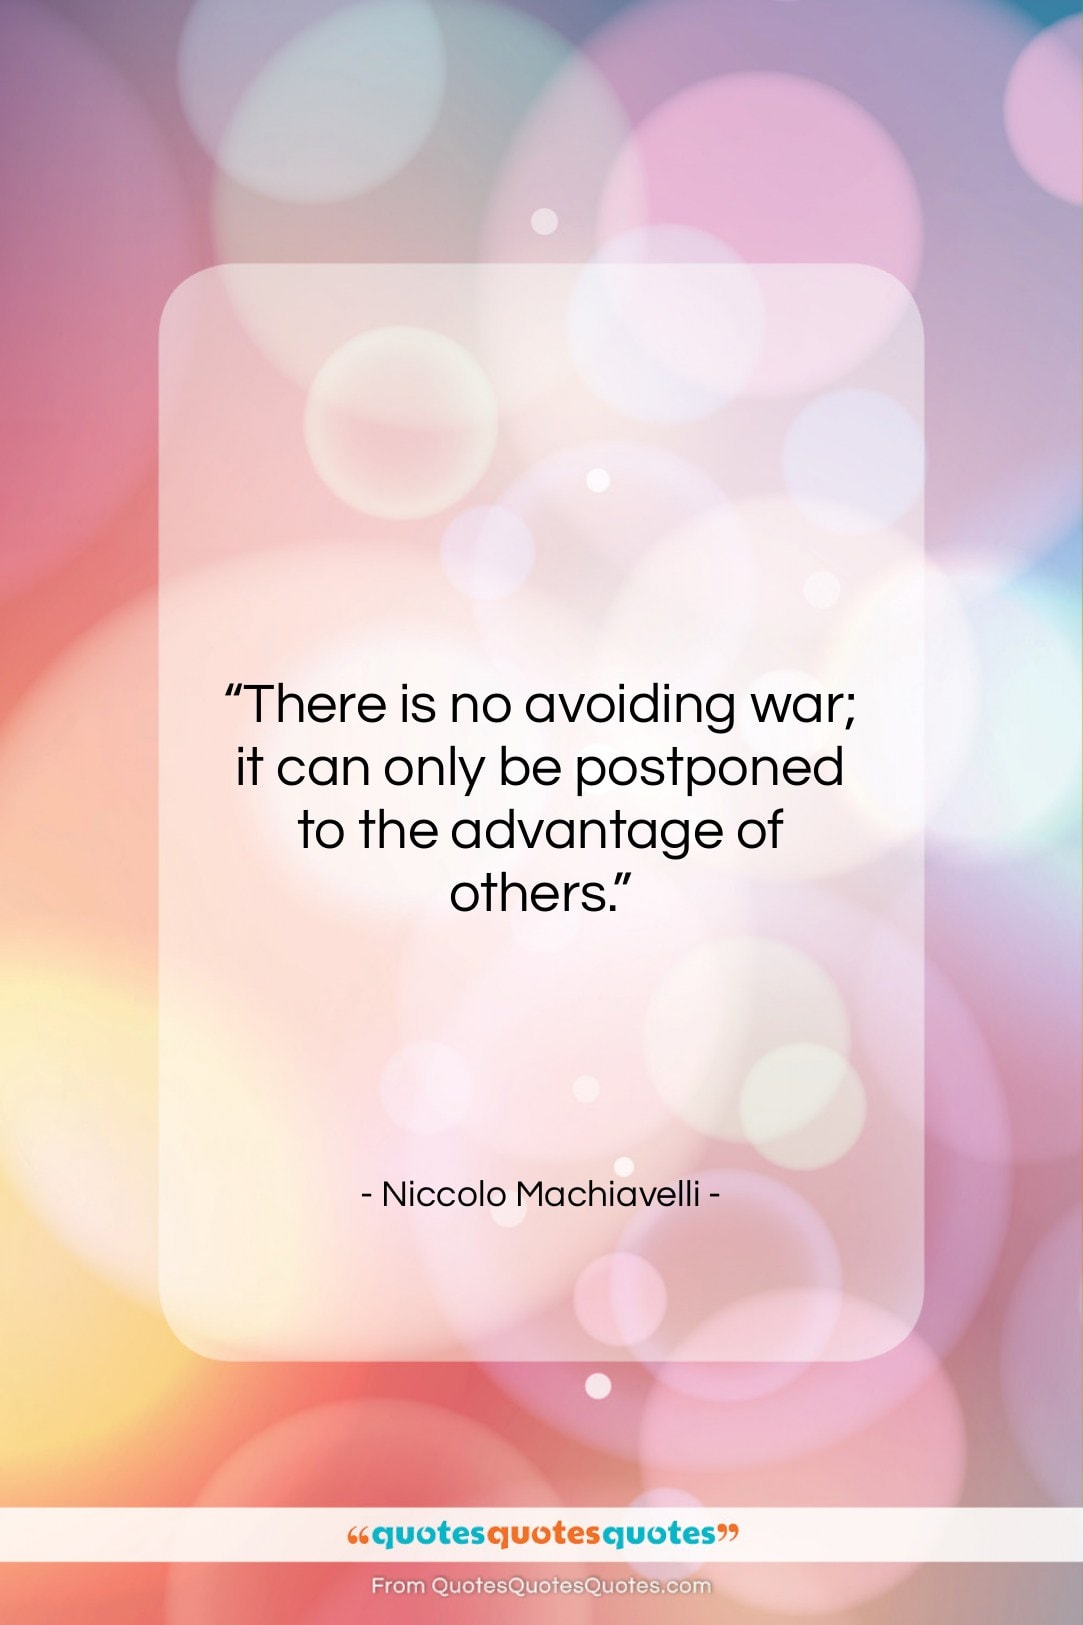 """Niccolo Machiavelli quote: """"There is no avoiding war; it can…""""- at QuotesQuotesQuotes.com"""